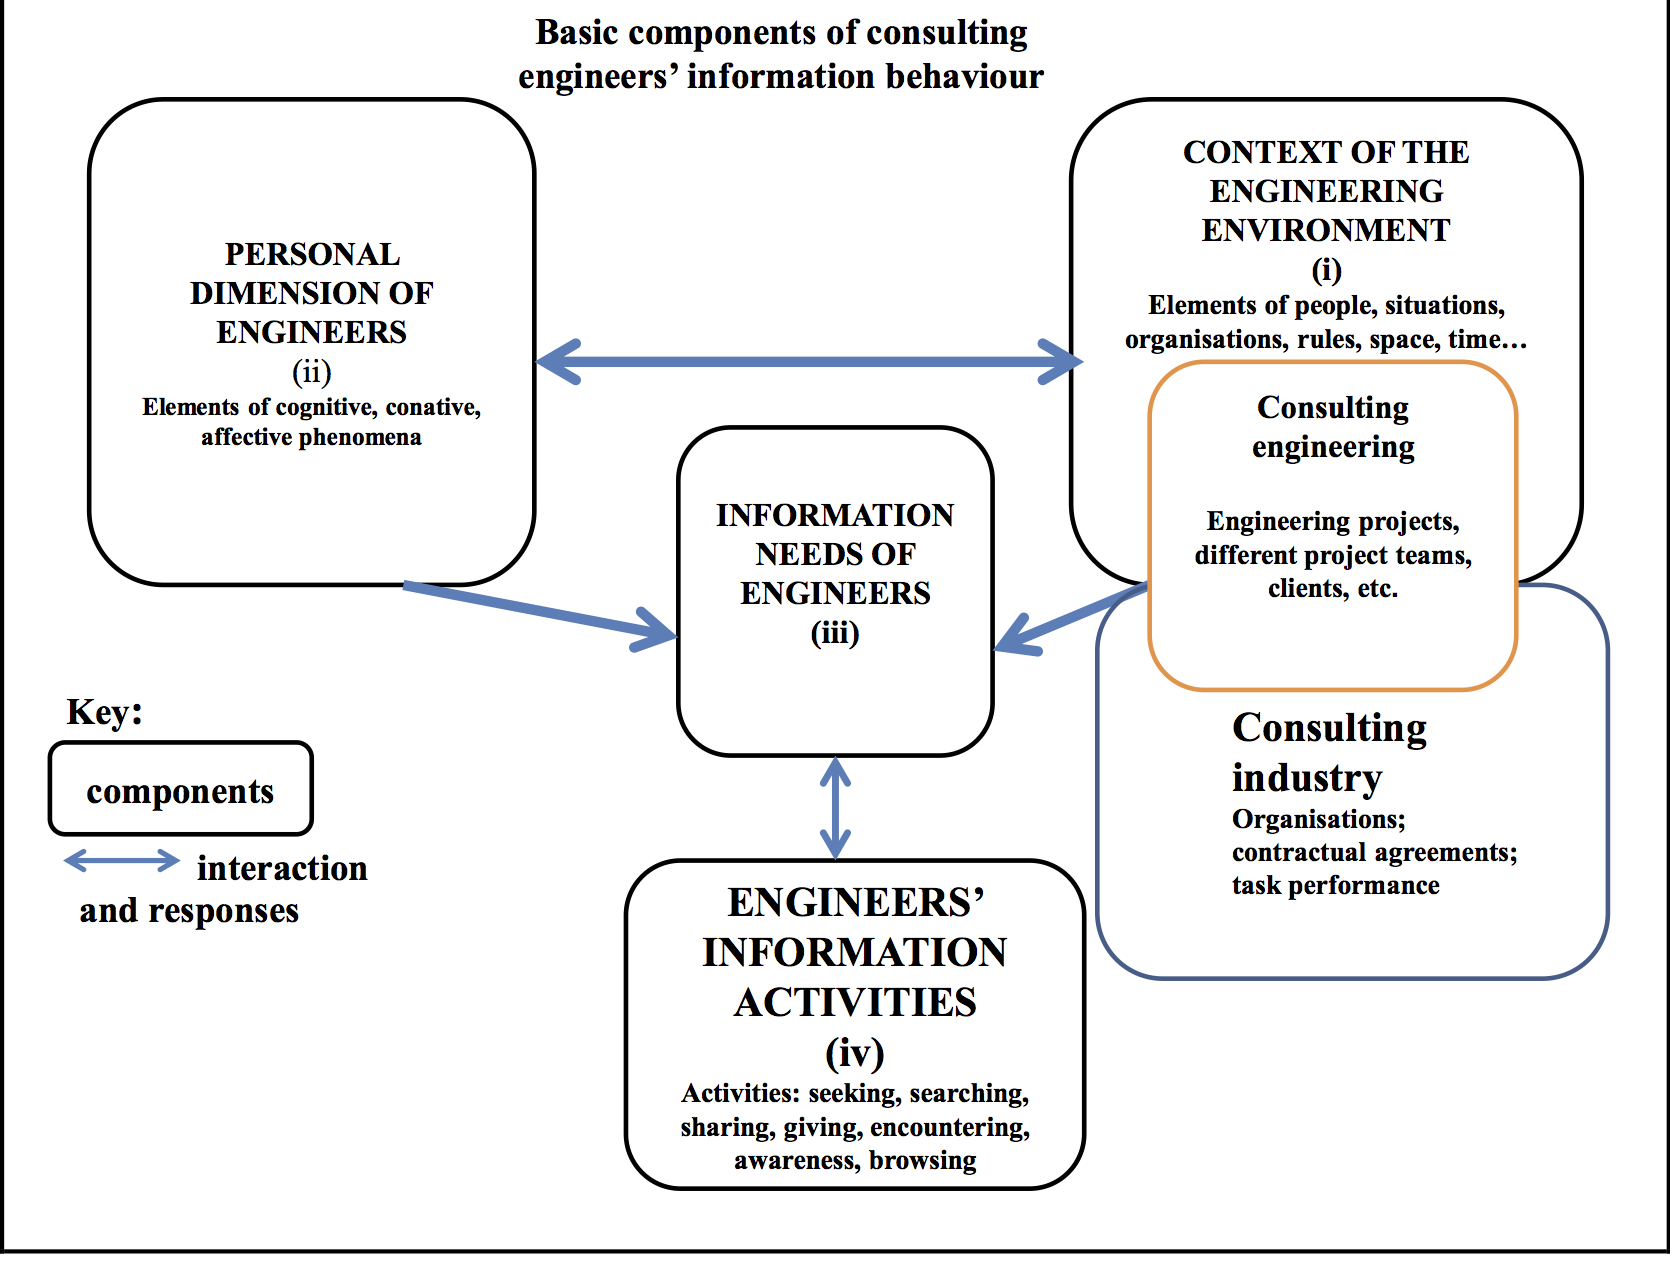 consulting engineers social networks and their collaborative information behaviour